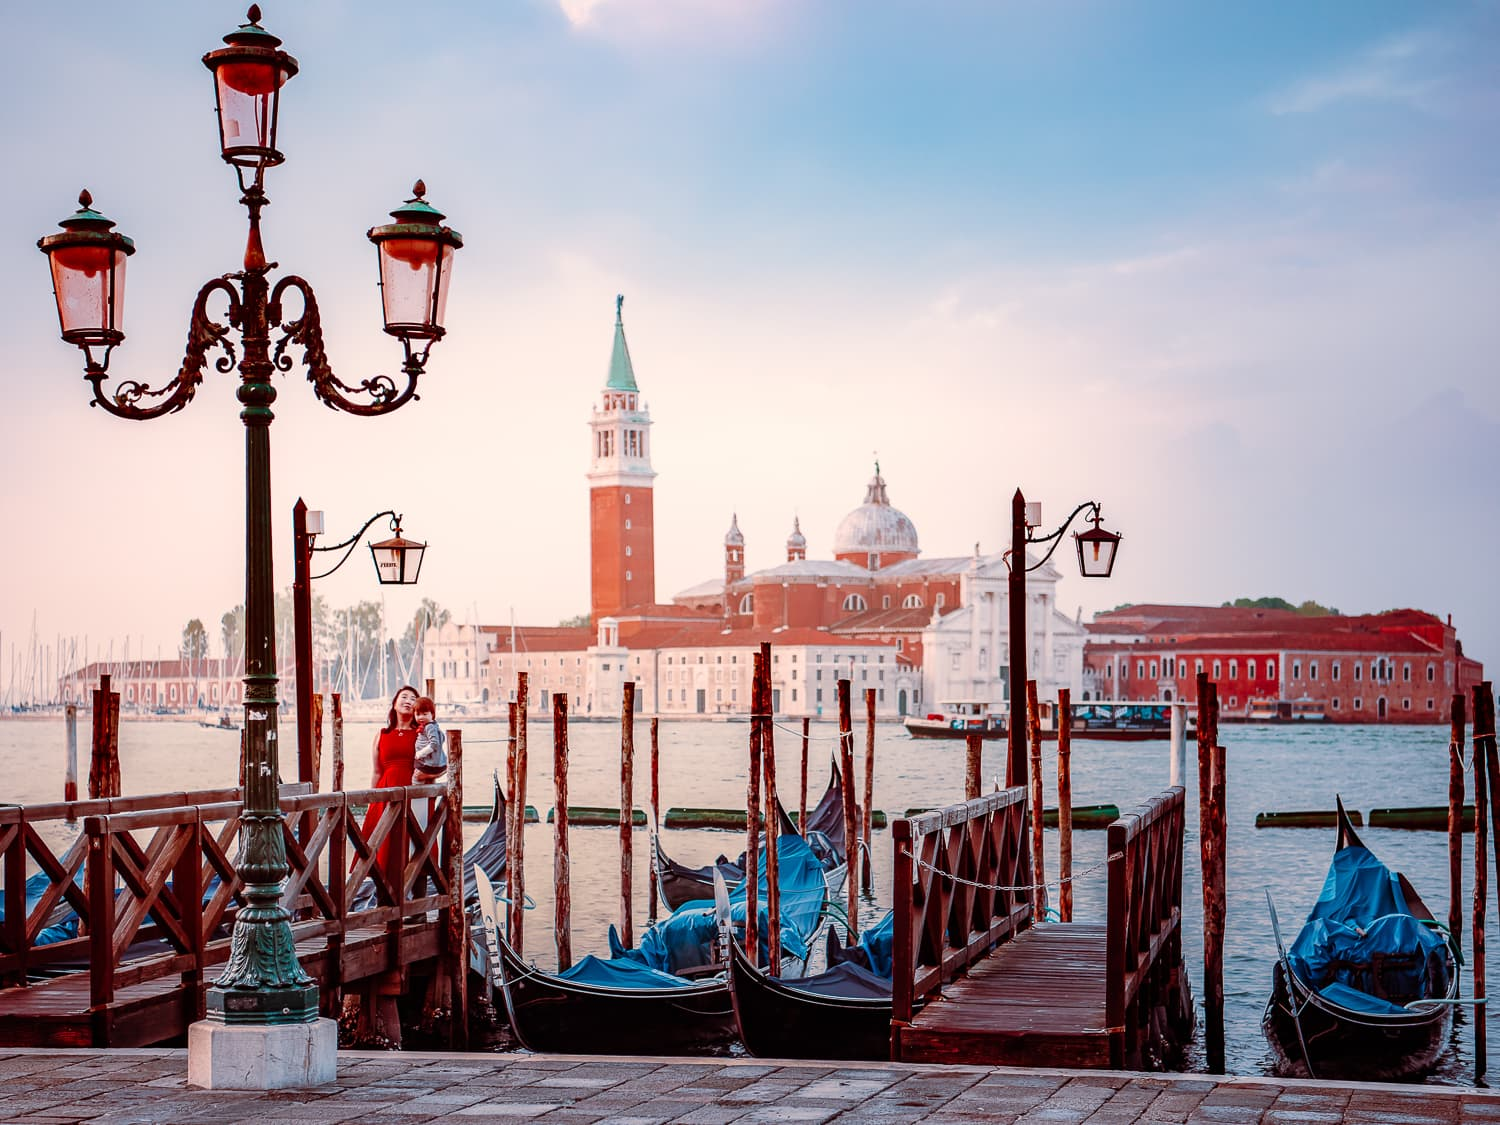 The view across the water from Piazza San Marco in Venice, Italy.